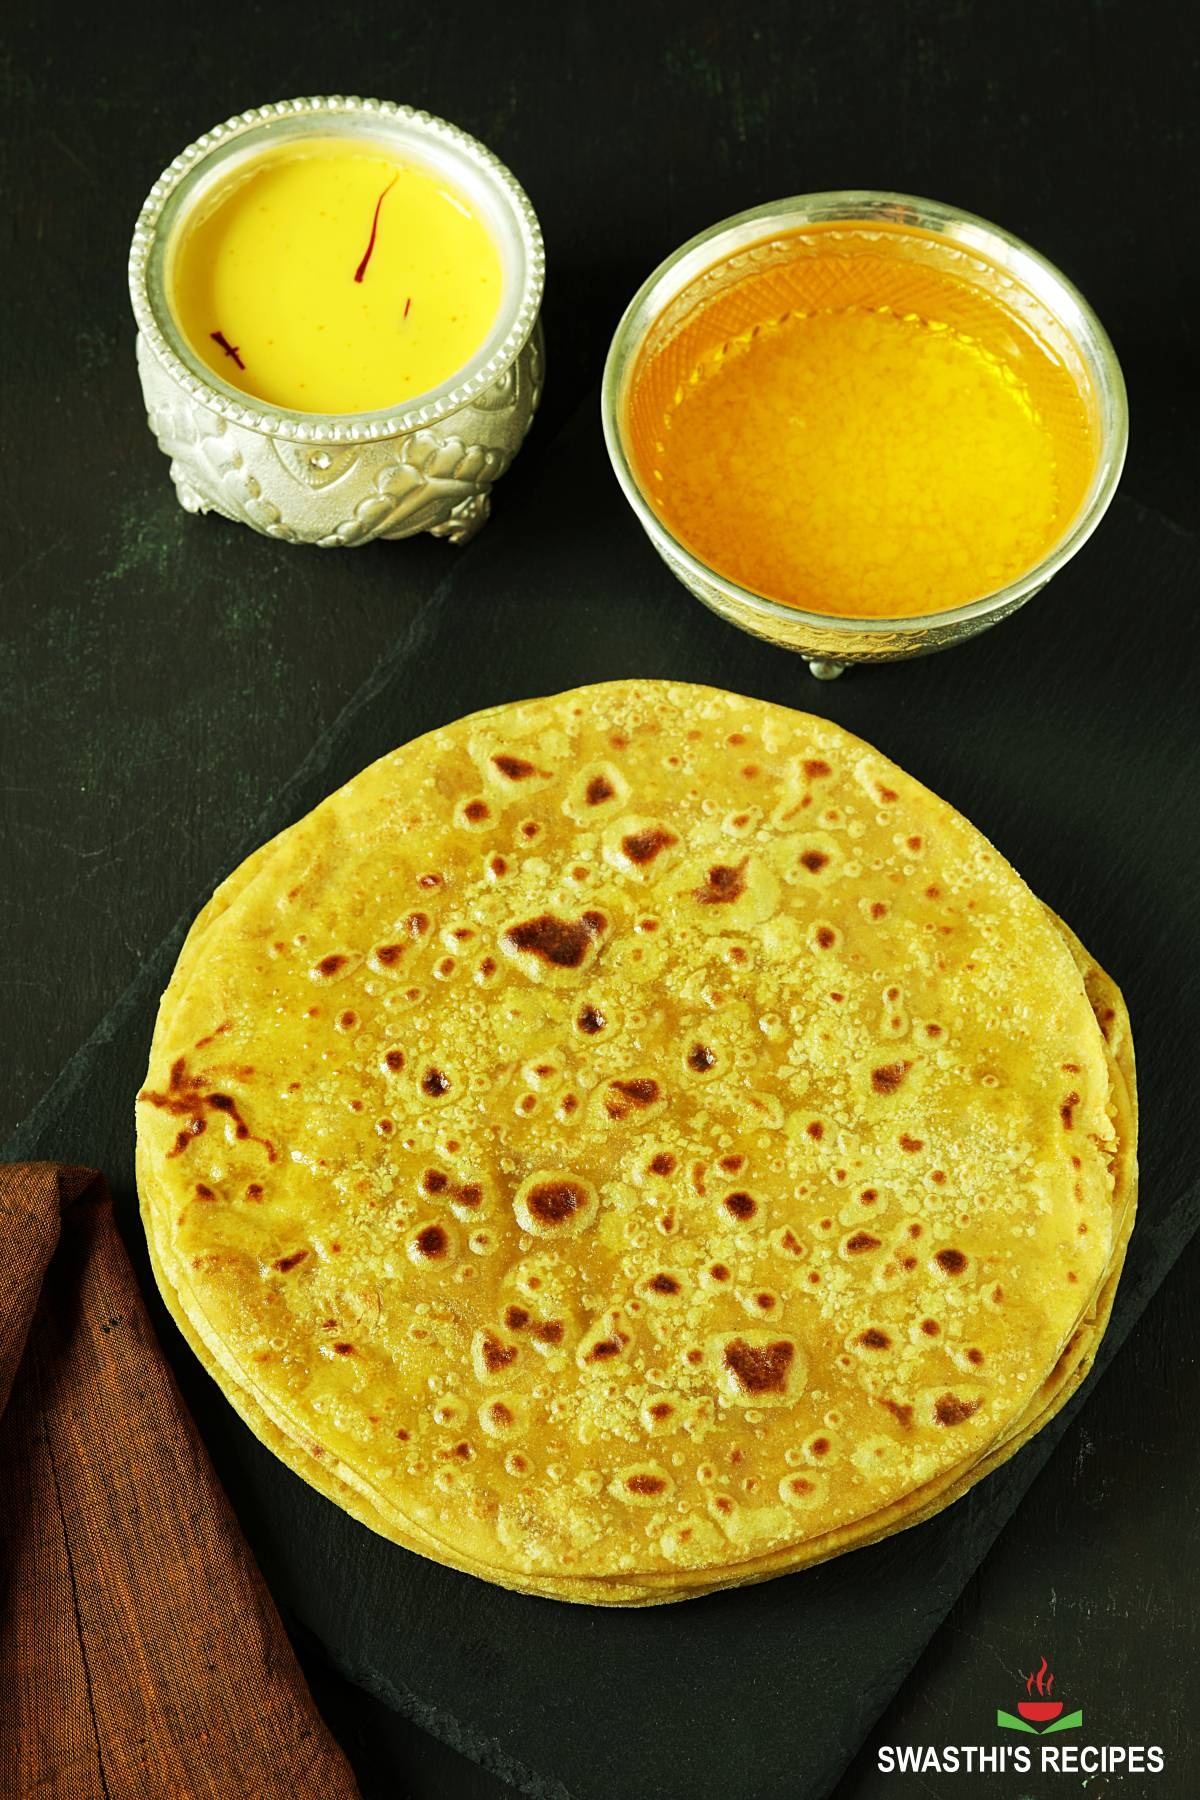 puran poli also known as bobbatlu made with lentils, jaggery and flour